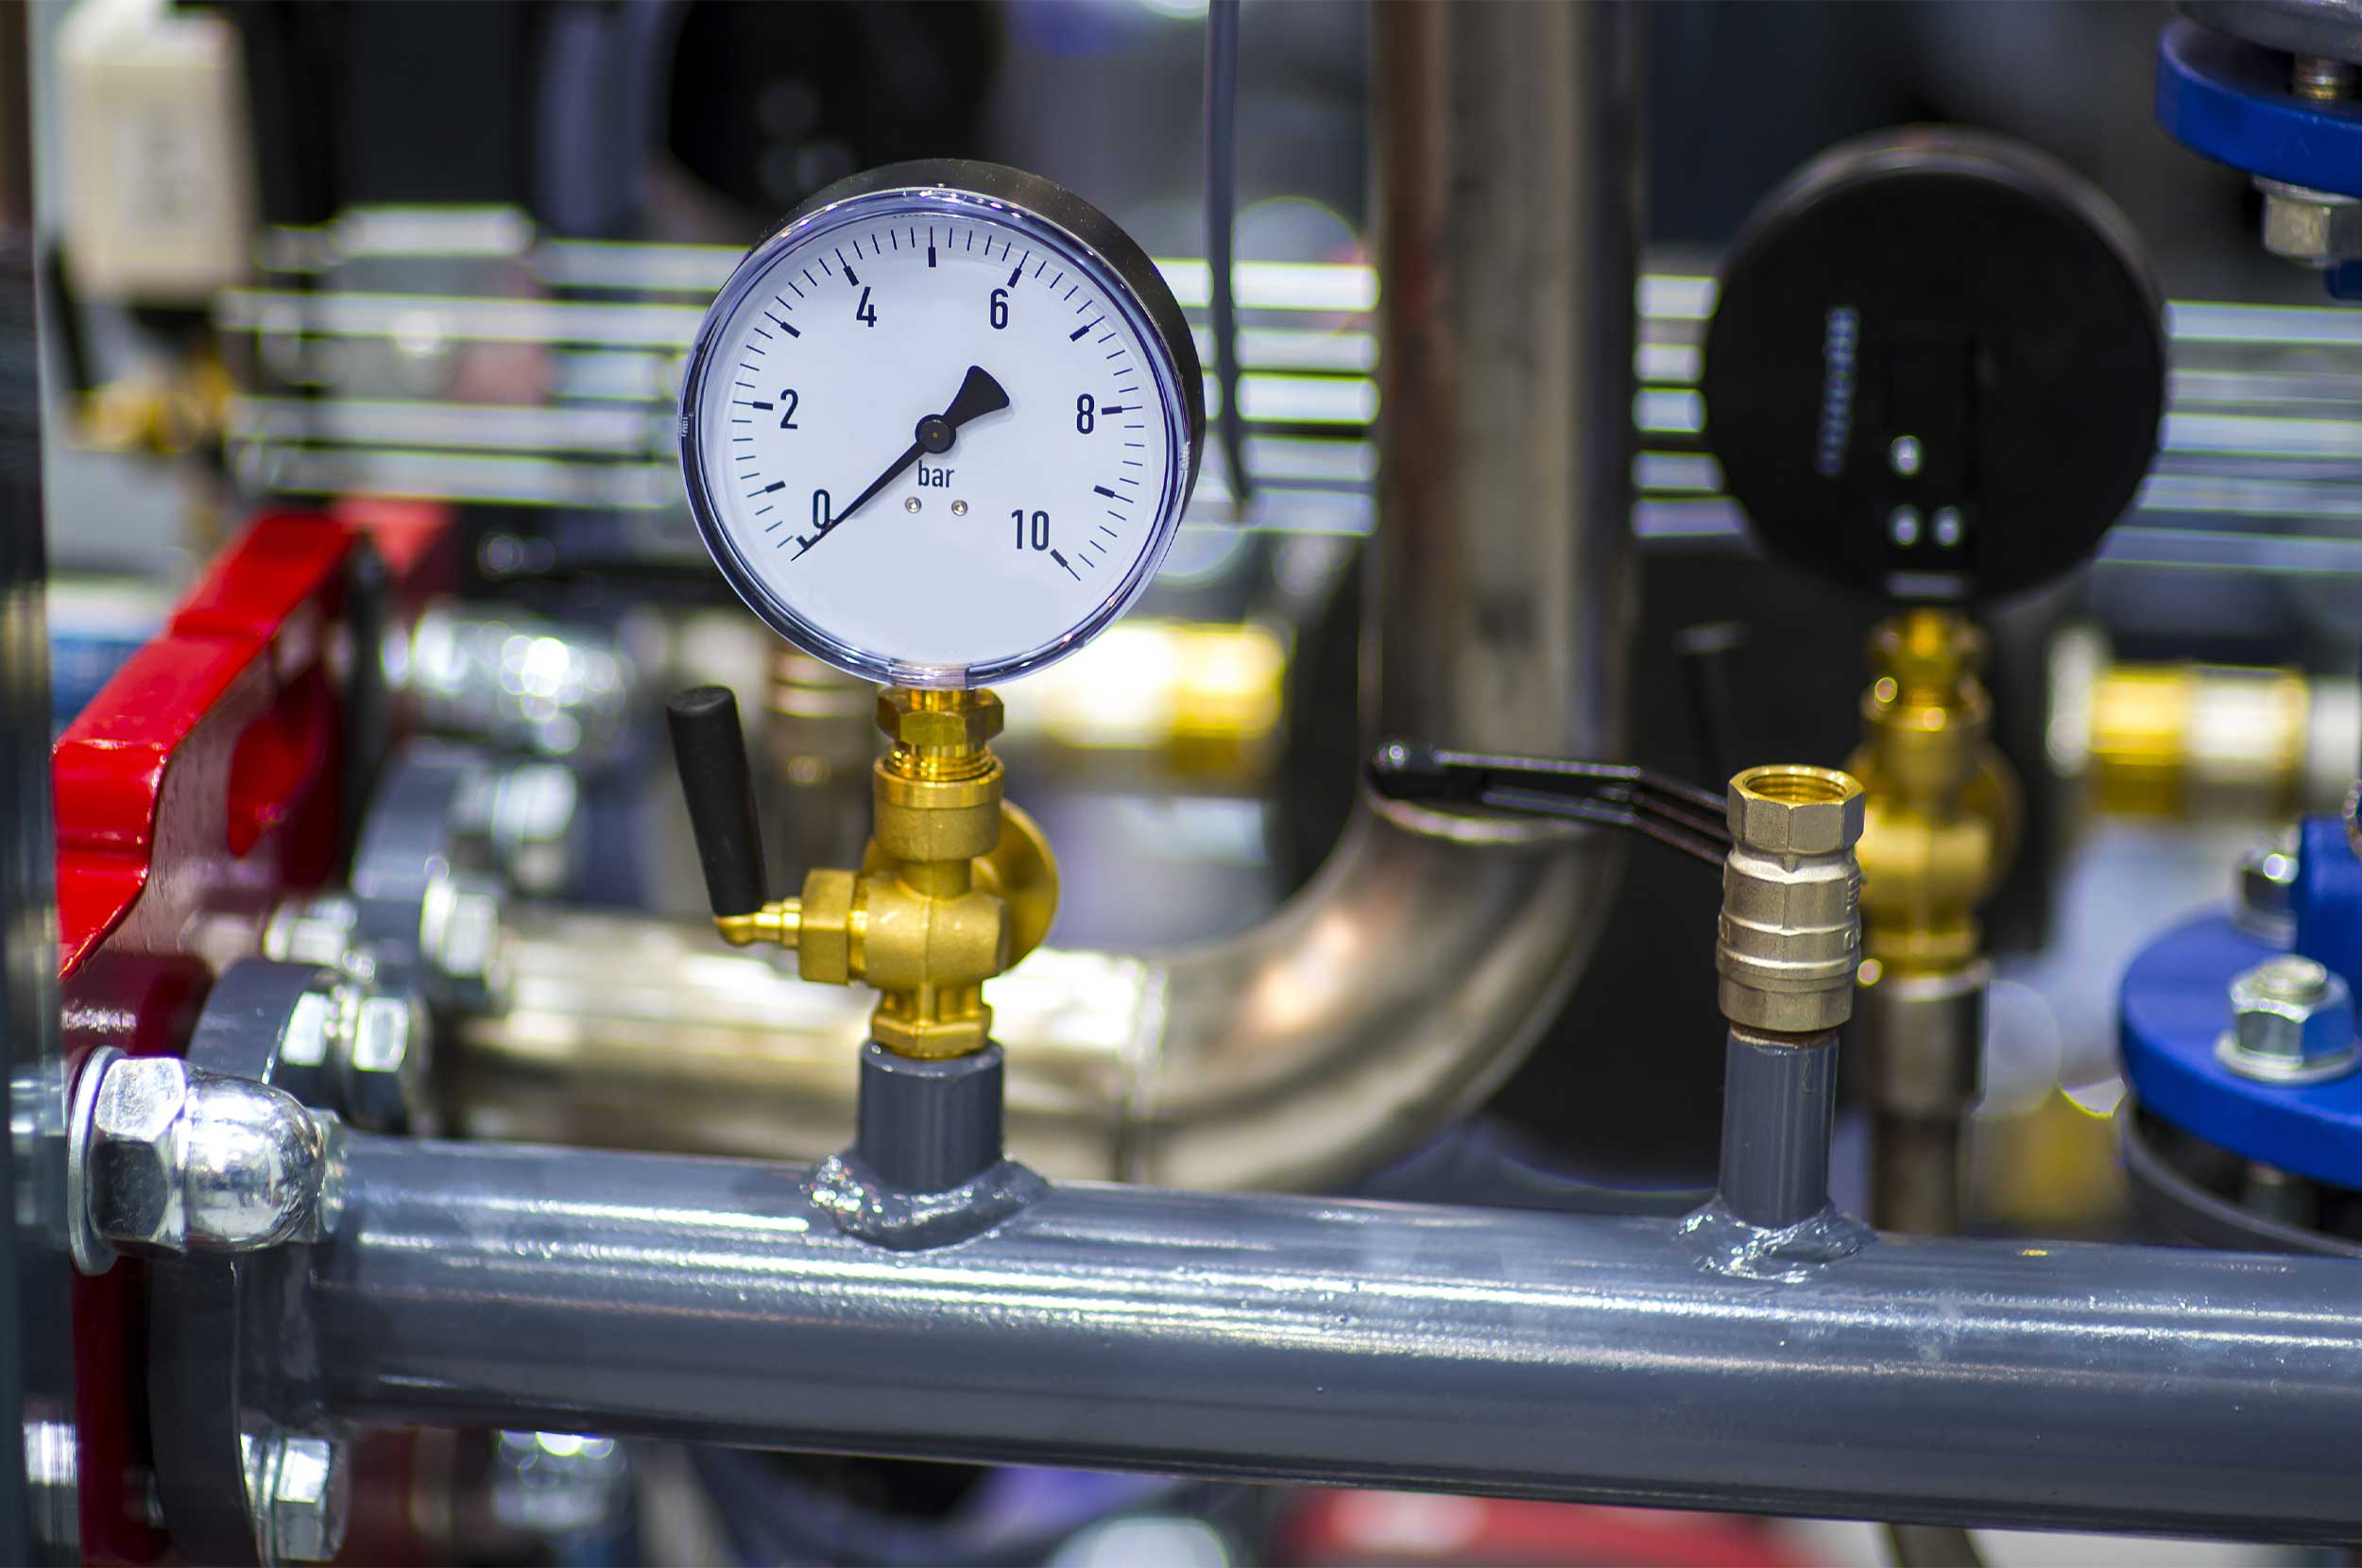 Pressure Gauge PSI Meter in pipe and valves of a water system